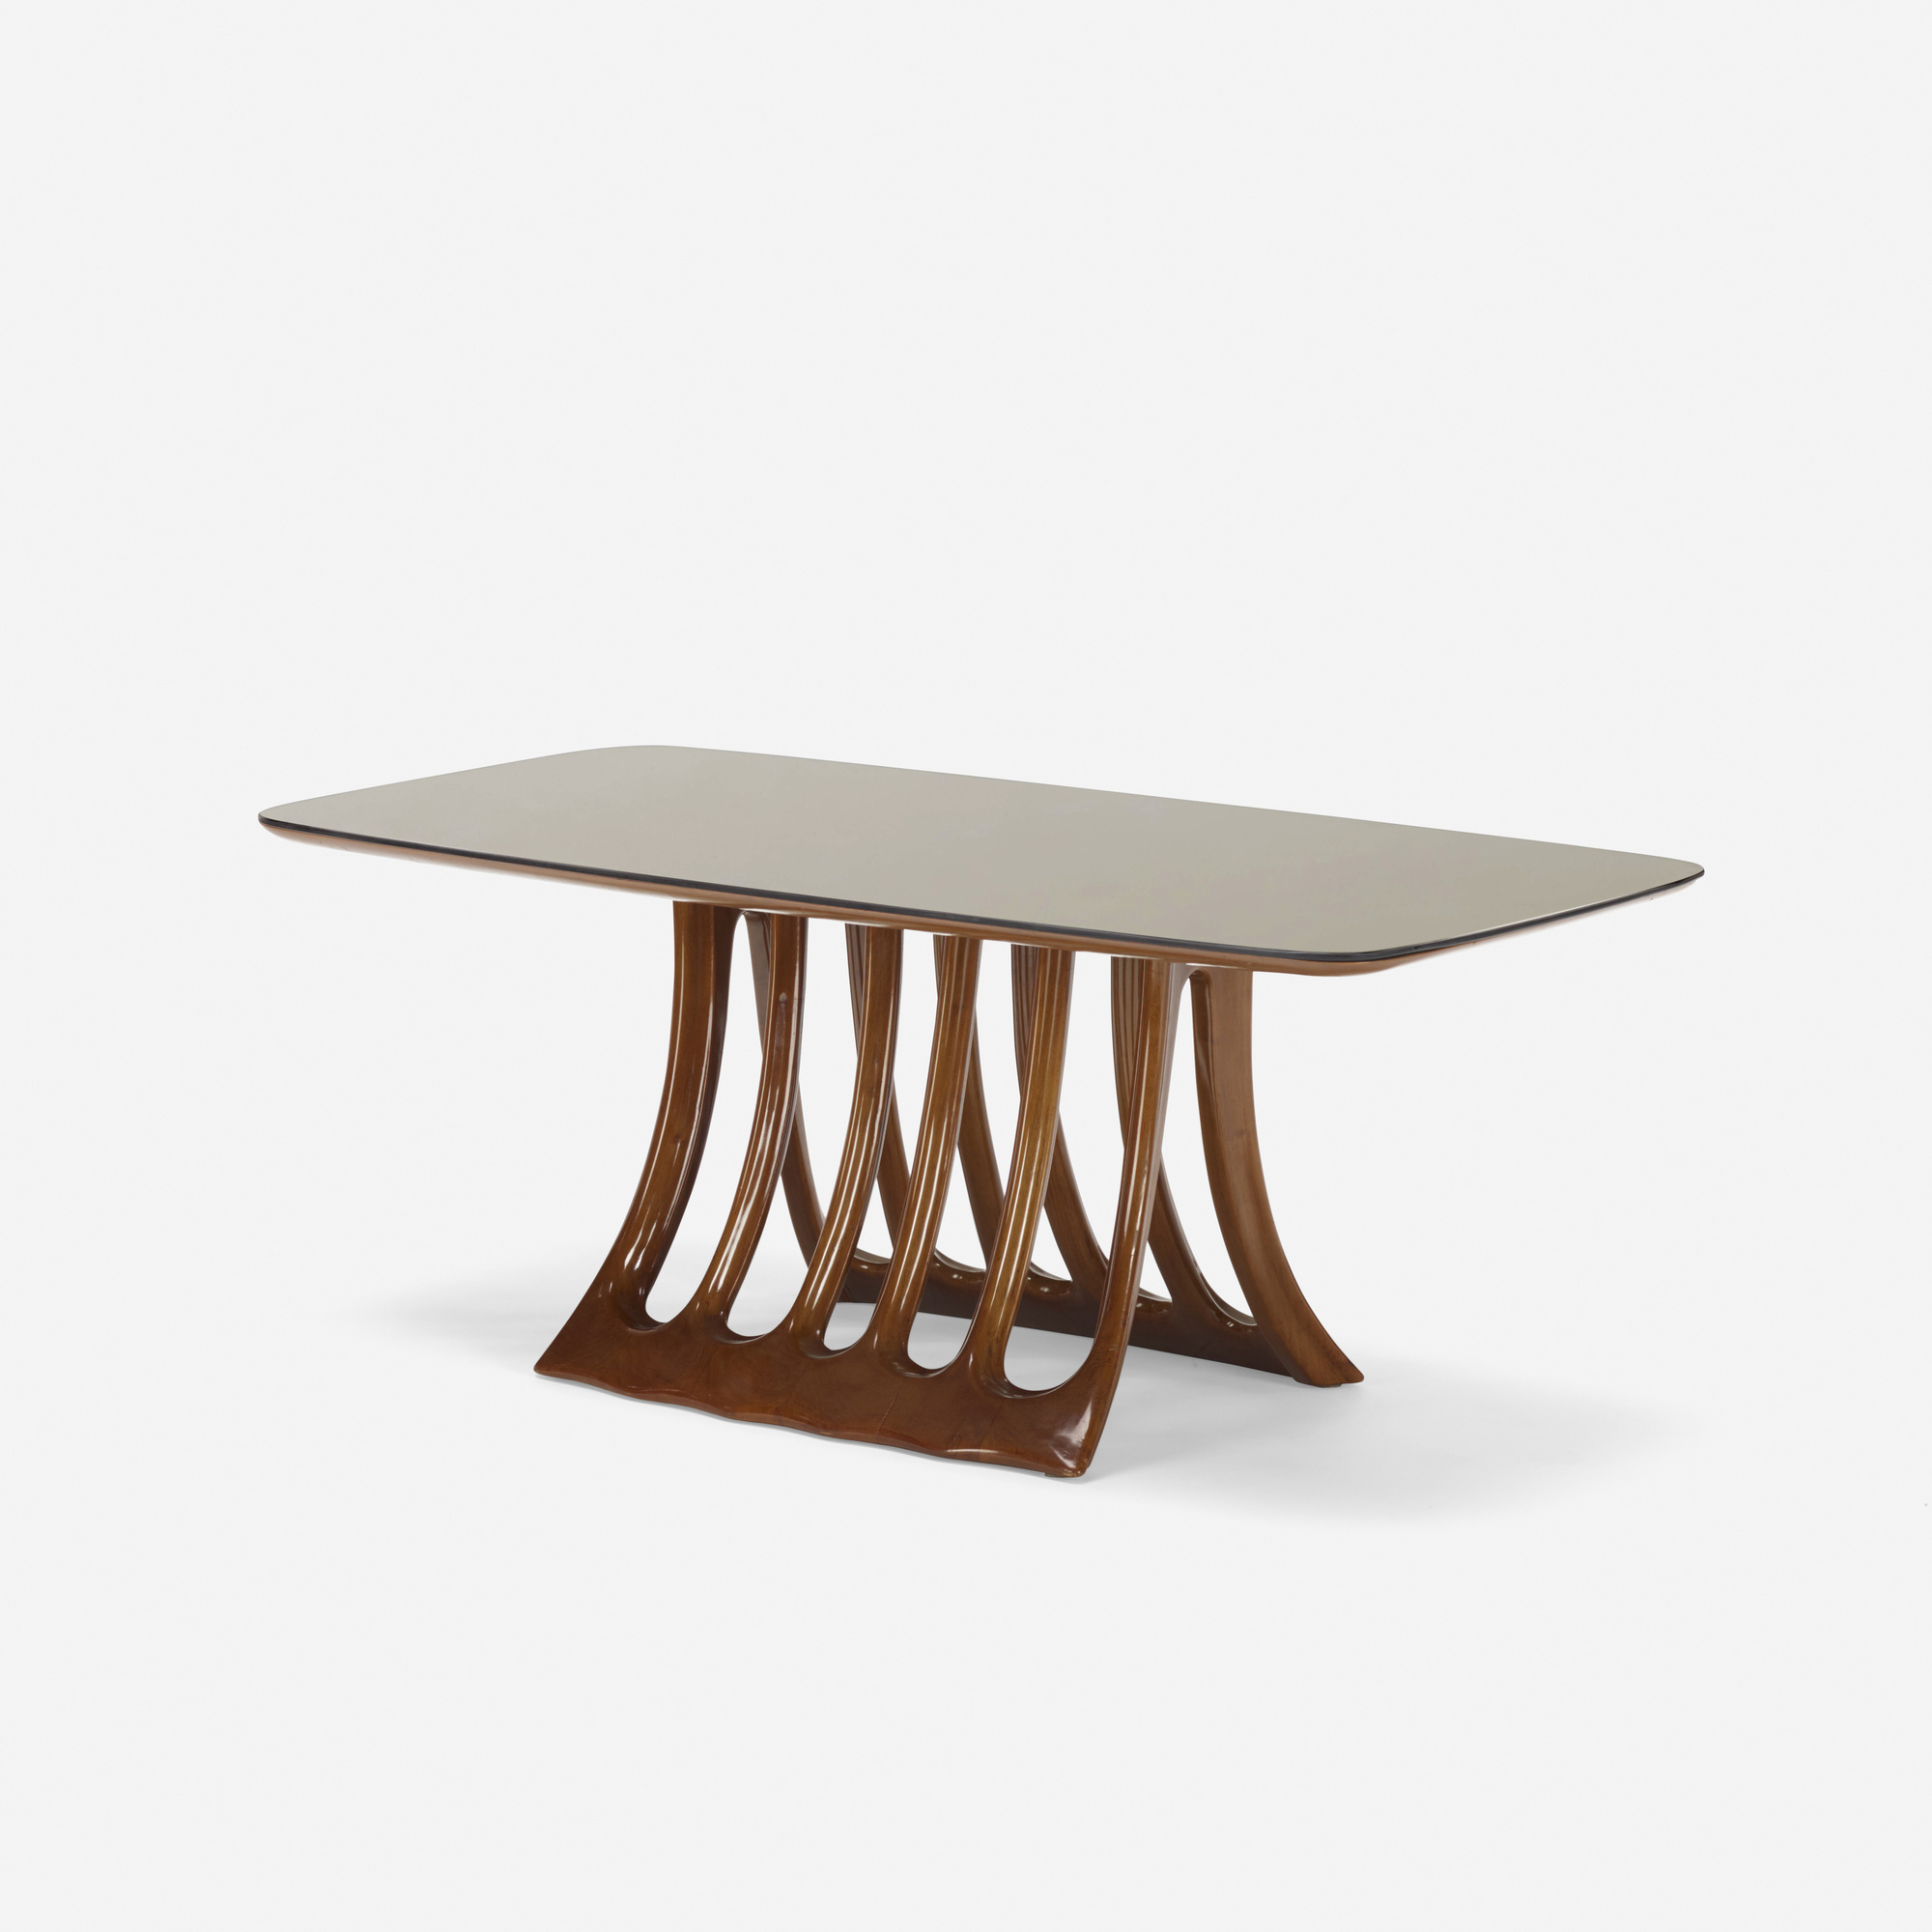 338: Osvaldo Borsani / coffee table (1 of 2)